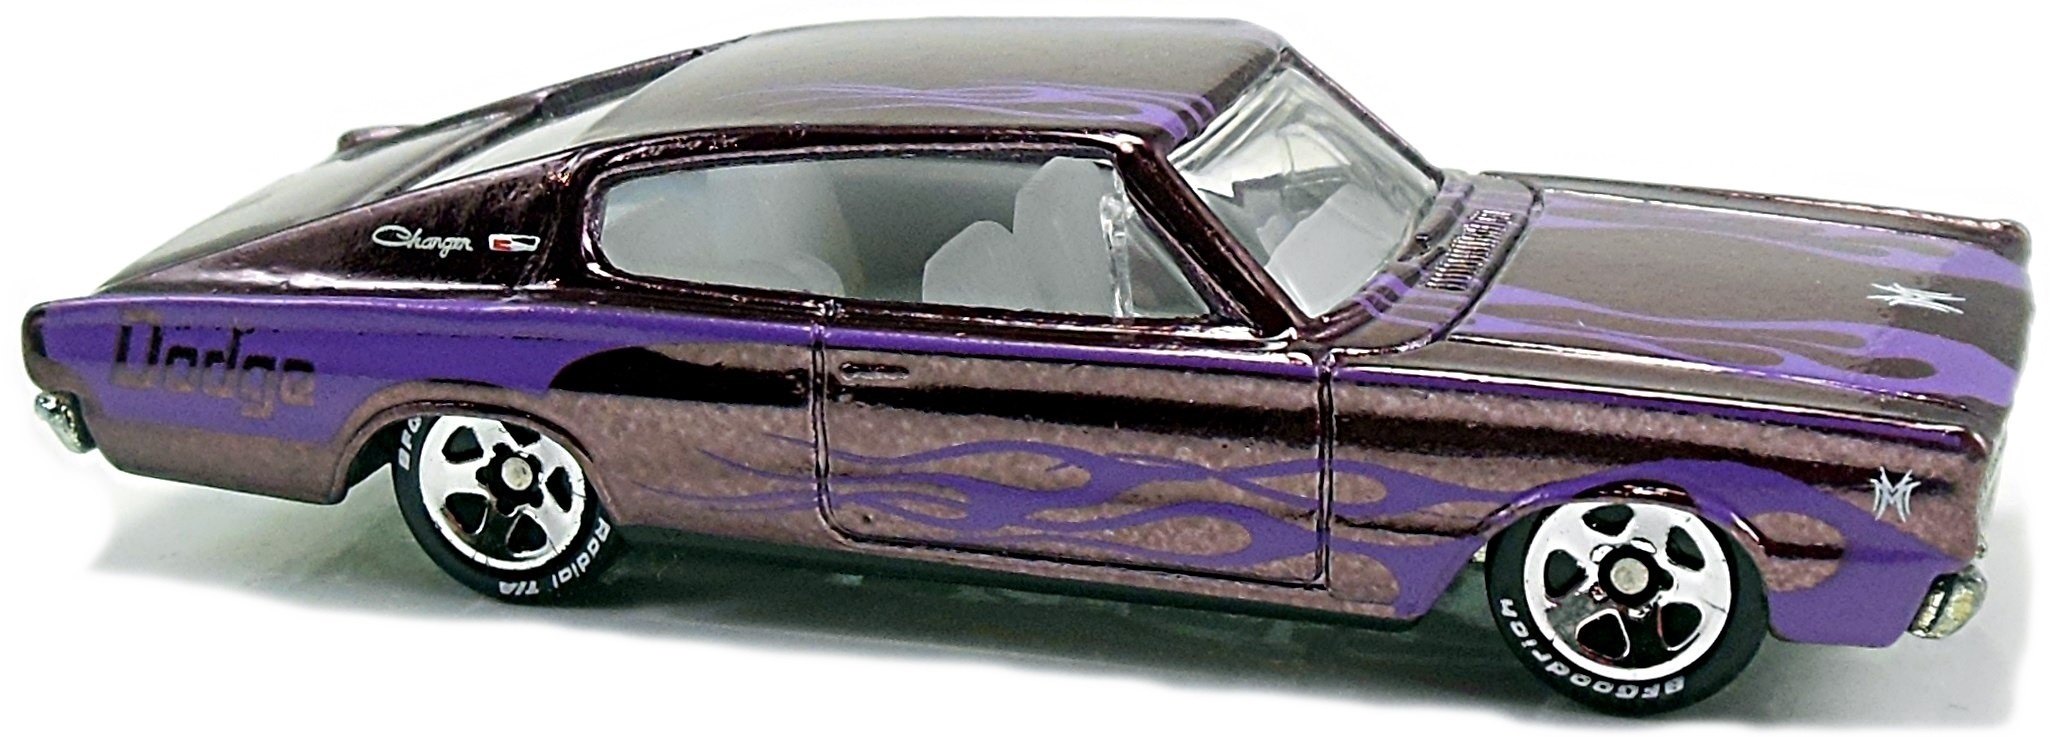 67 Dodge Charger 80mm 2000 Hot Wheels Newsletter